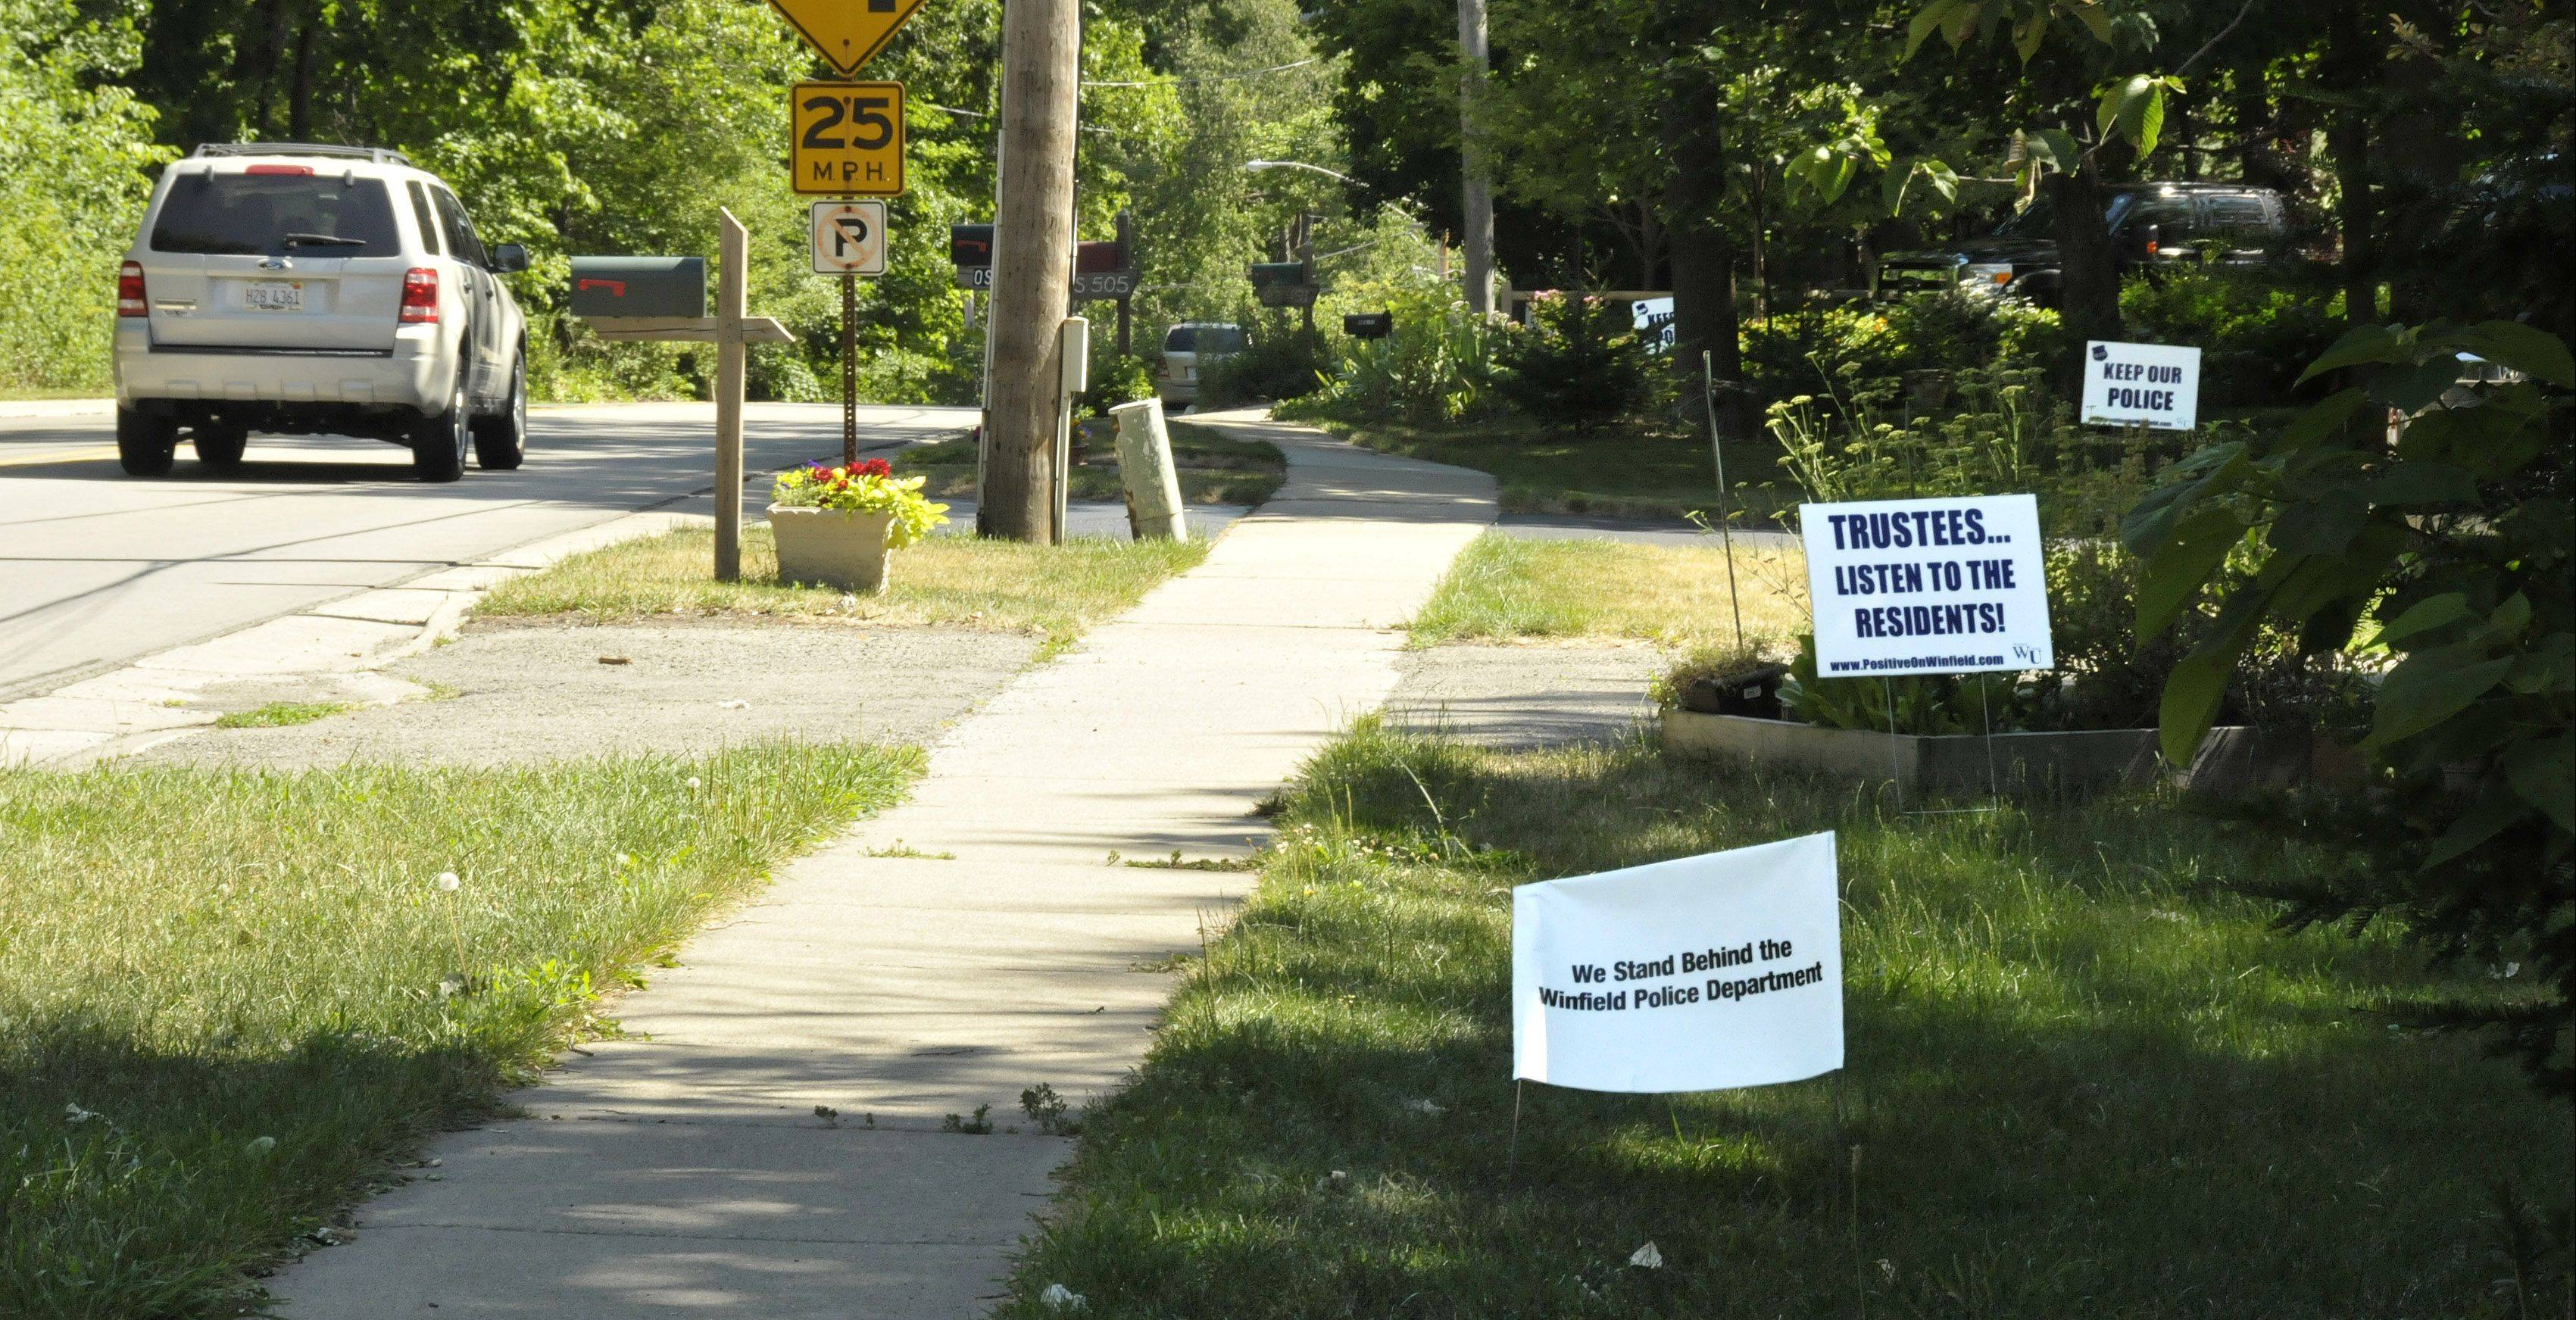 Winfield residents, many of whom have posted signs in support of keeping the village police department intact, will vote Nov. 6 on whether they're willing to pay higher property taxes to prevent the disbanding of the department to pay for road repairs.